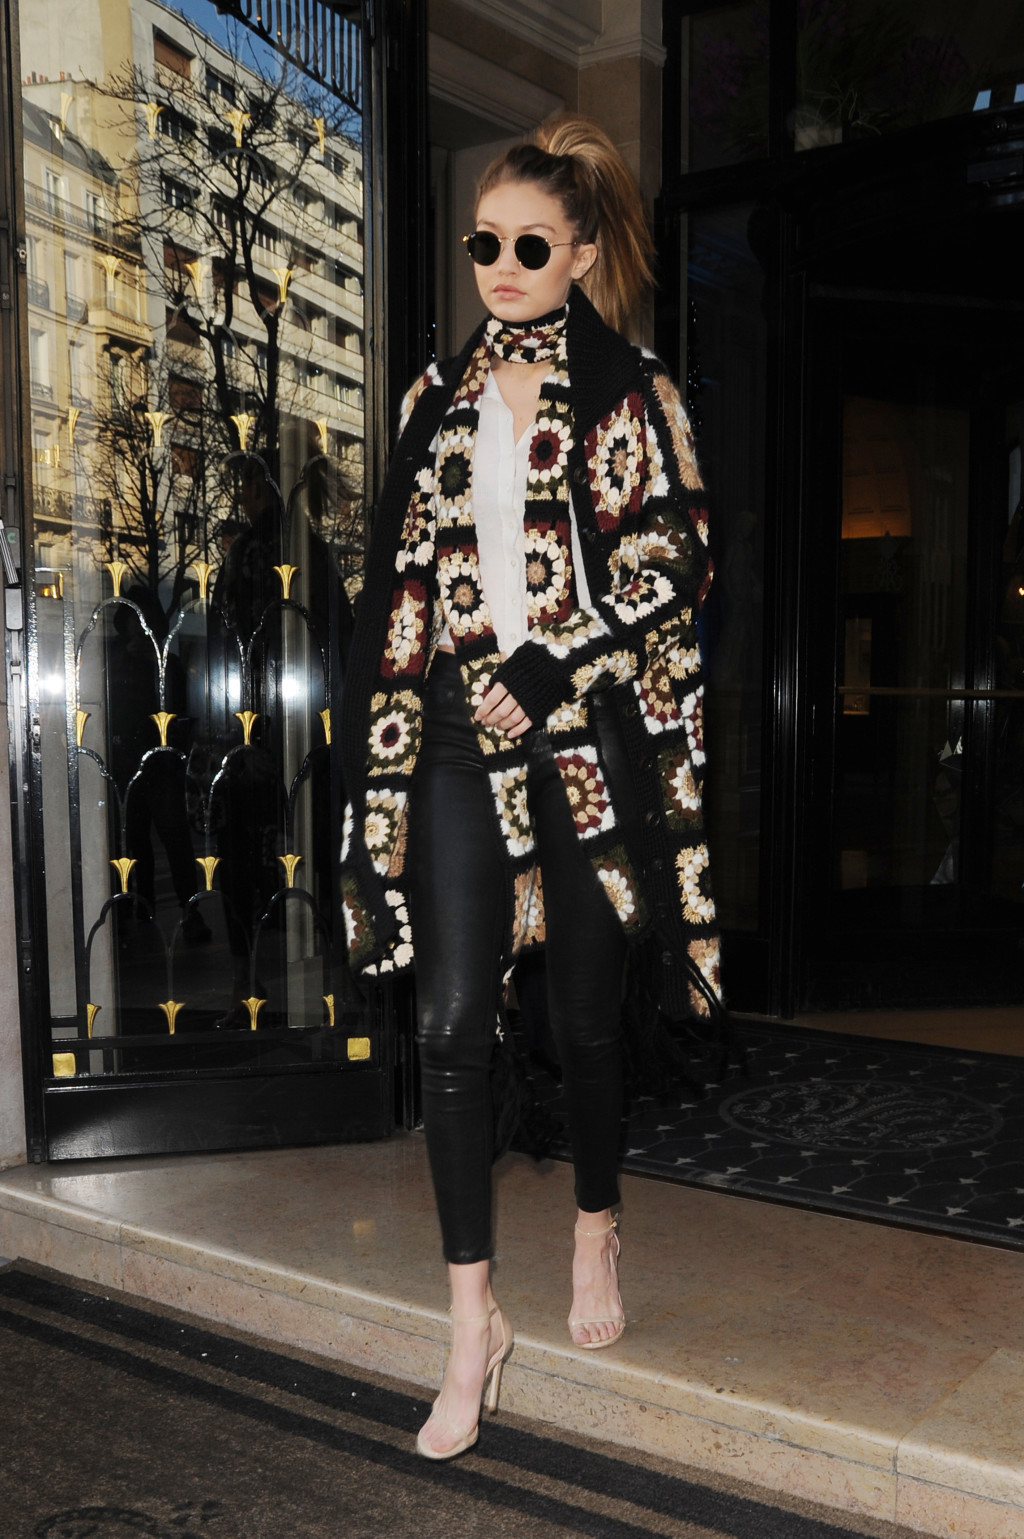 Gigi Hadid in an embroidered cardigan and black leggings